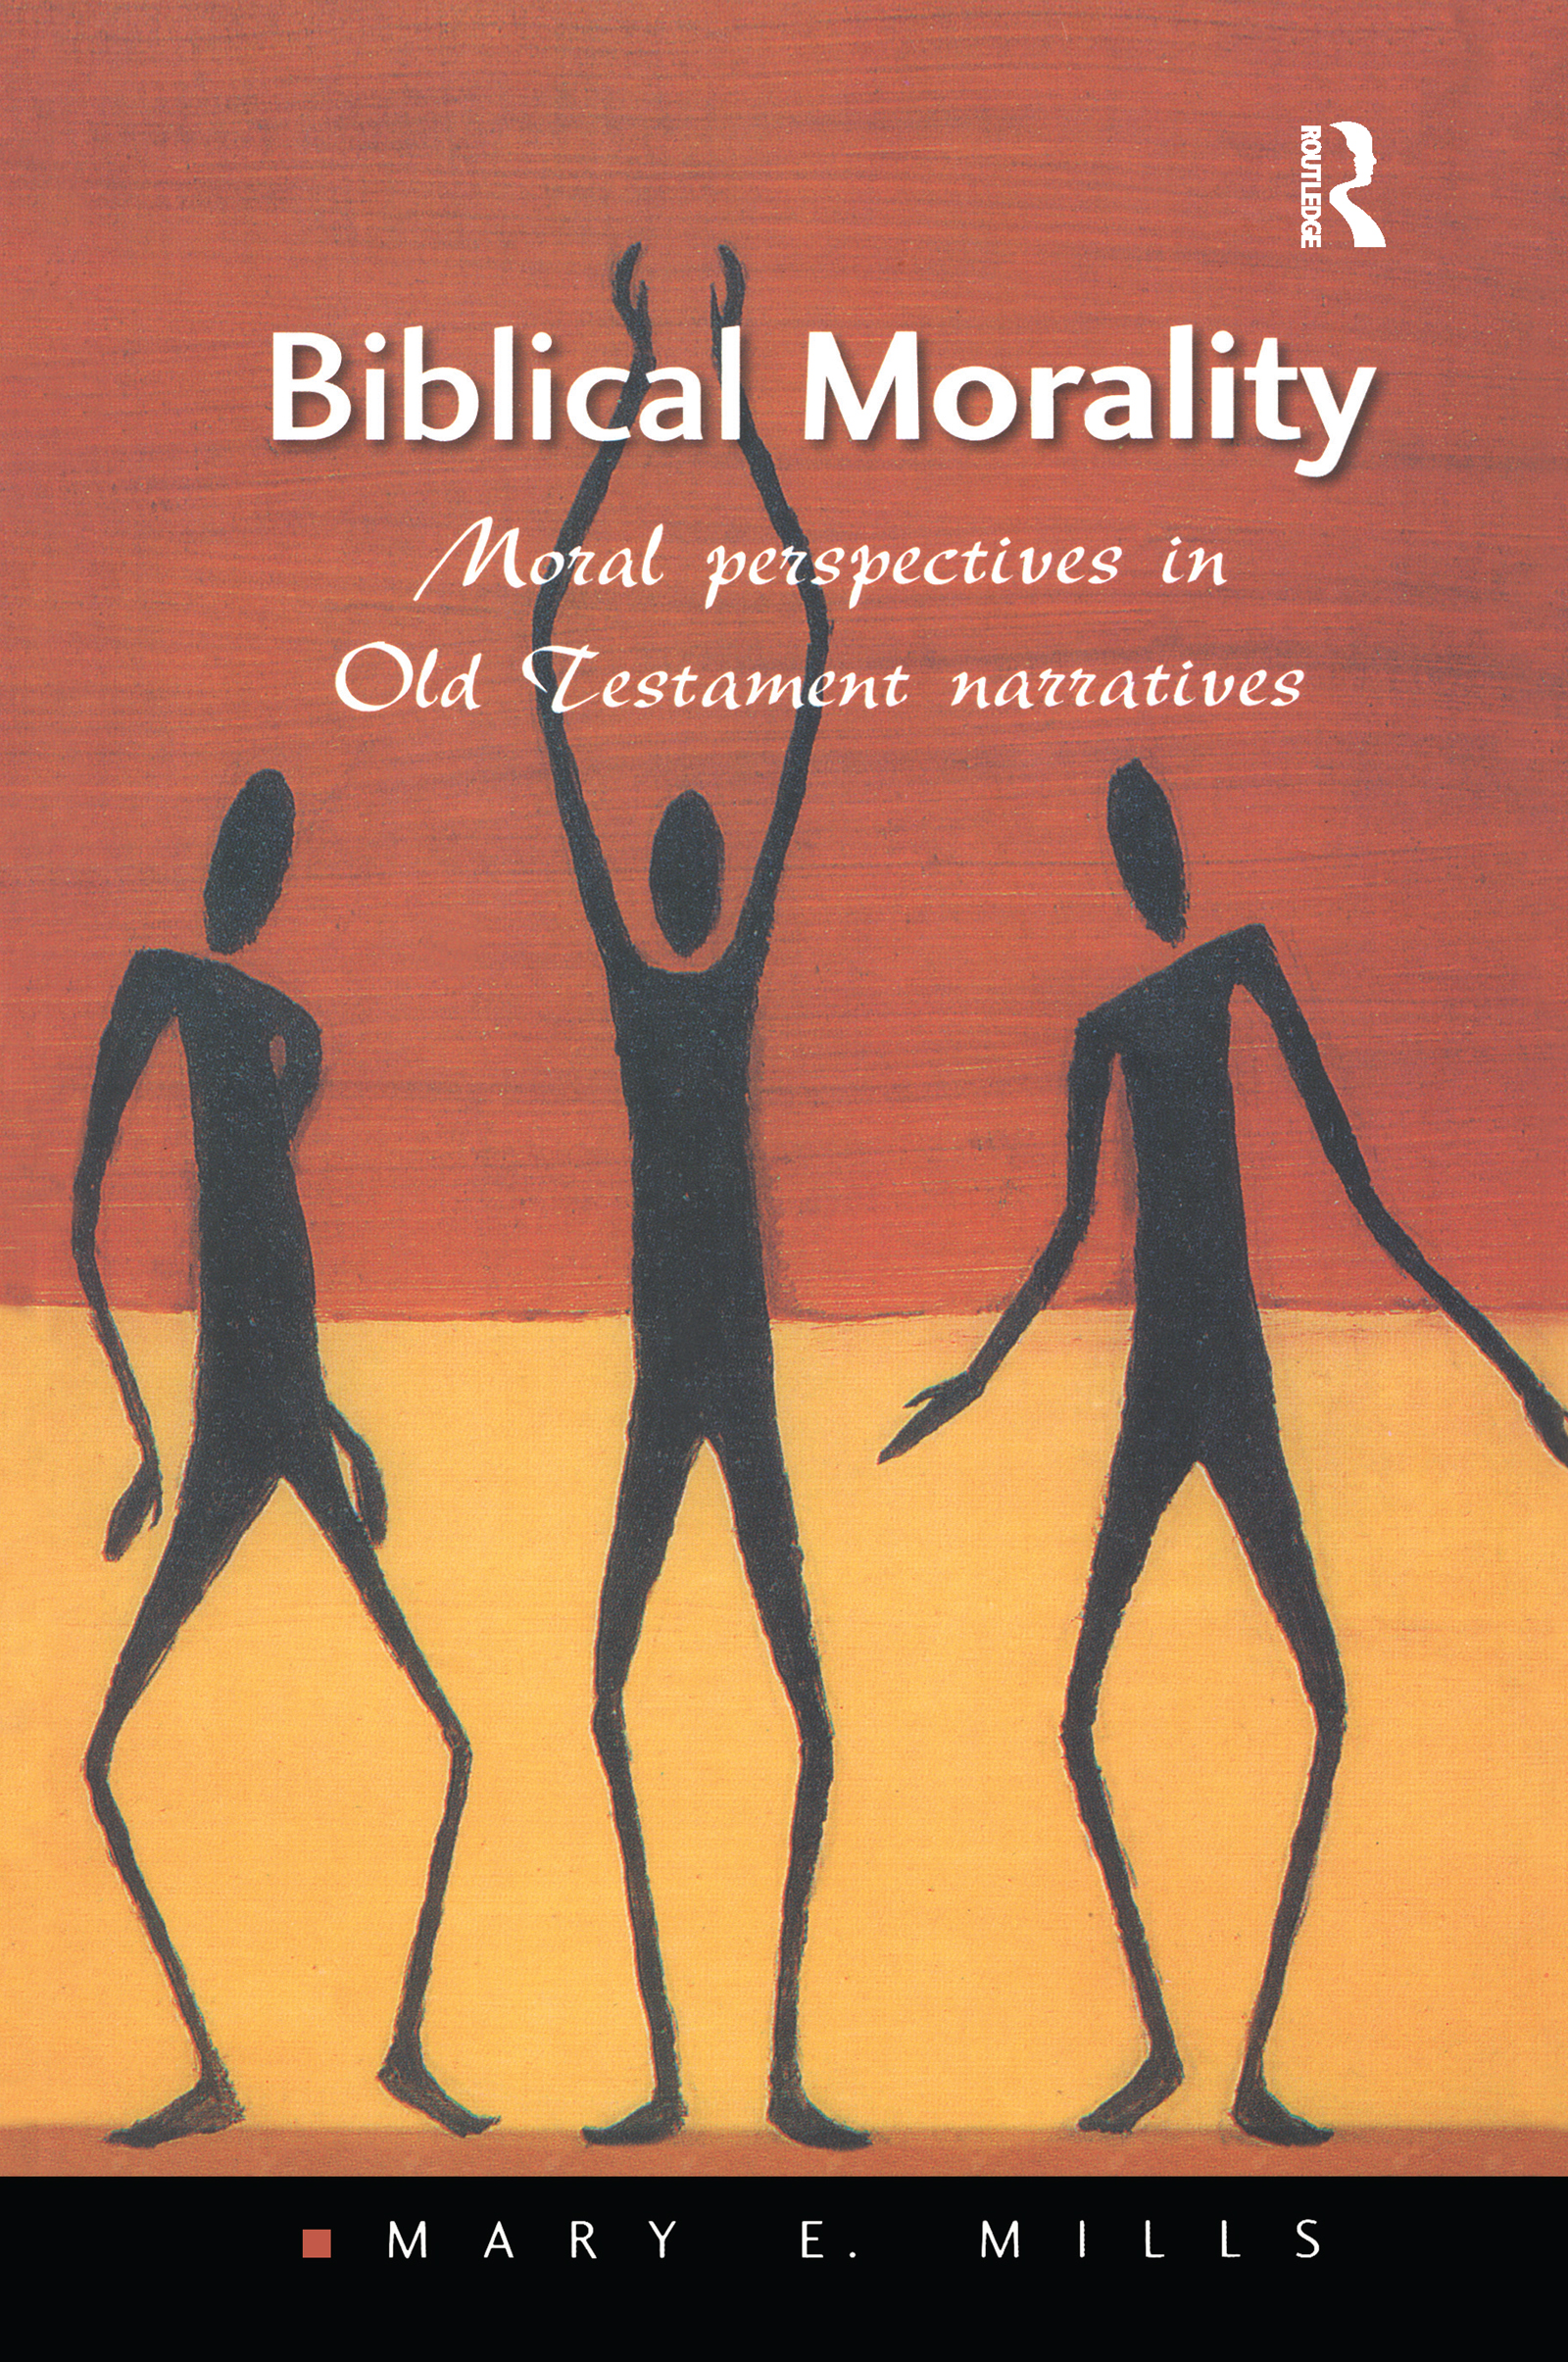 Biblical Morality: Moral Perspectives in Old Testament Narratives, 1st Edition (Paperback) book cover